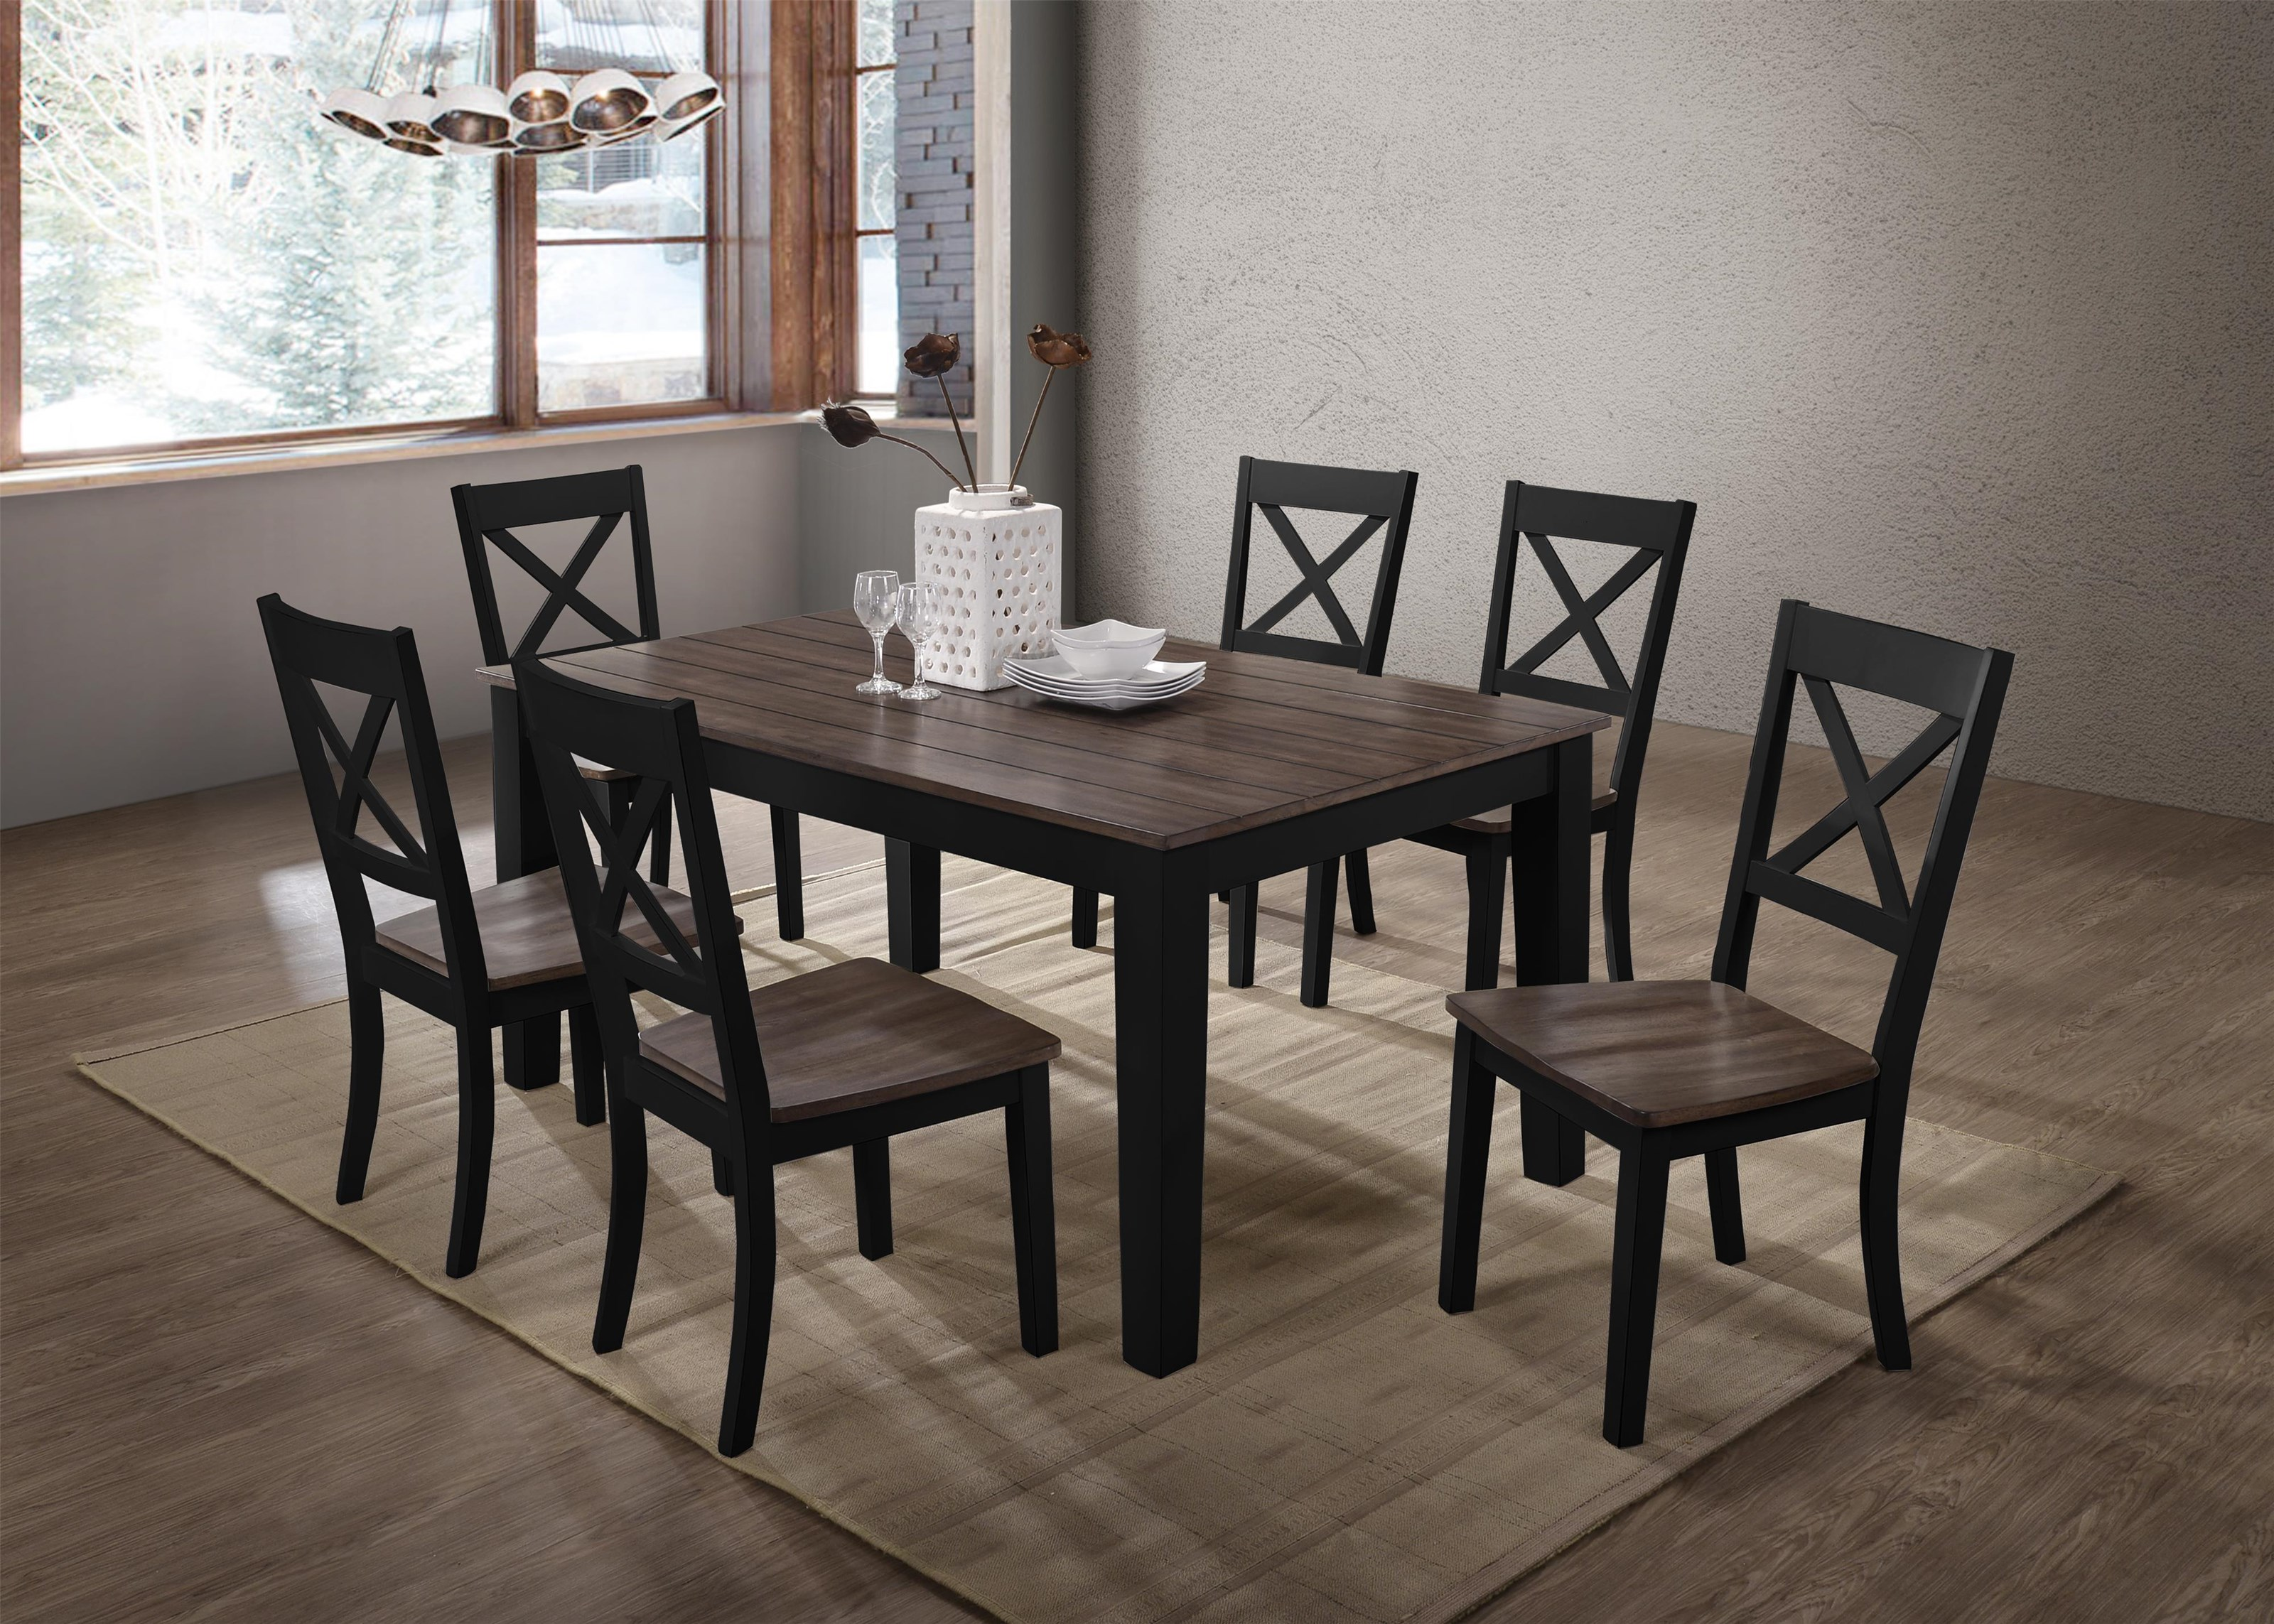 5058 7 Piece Table and Chair Set by United Furniture Industries at Value City Furniture